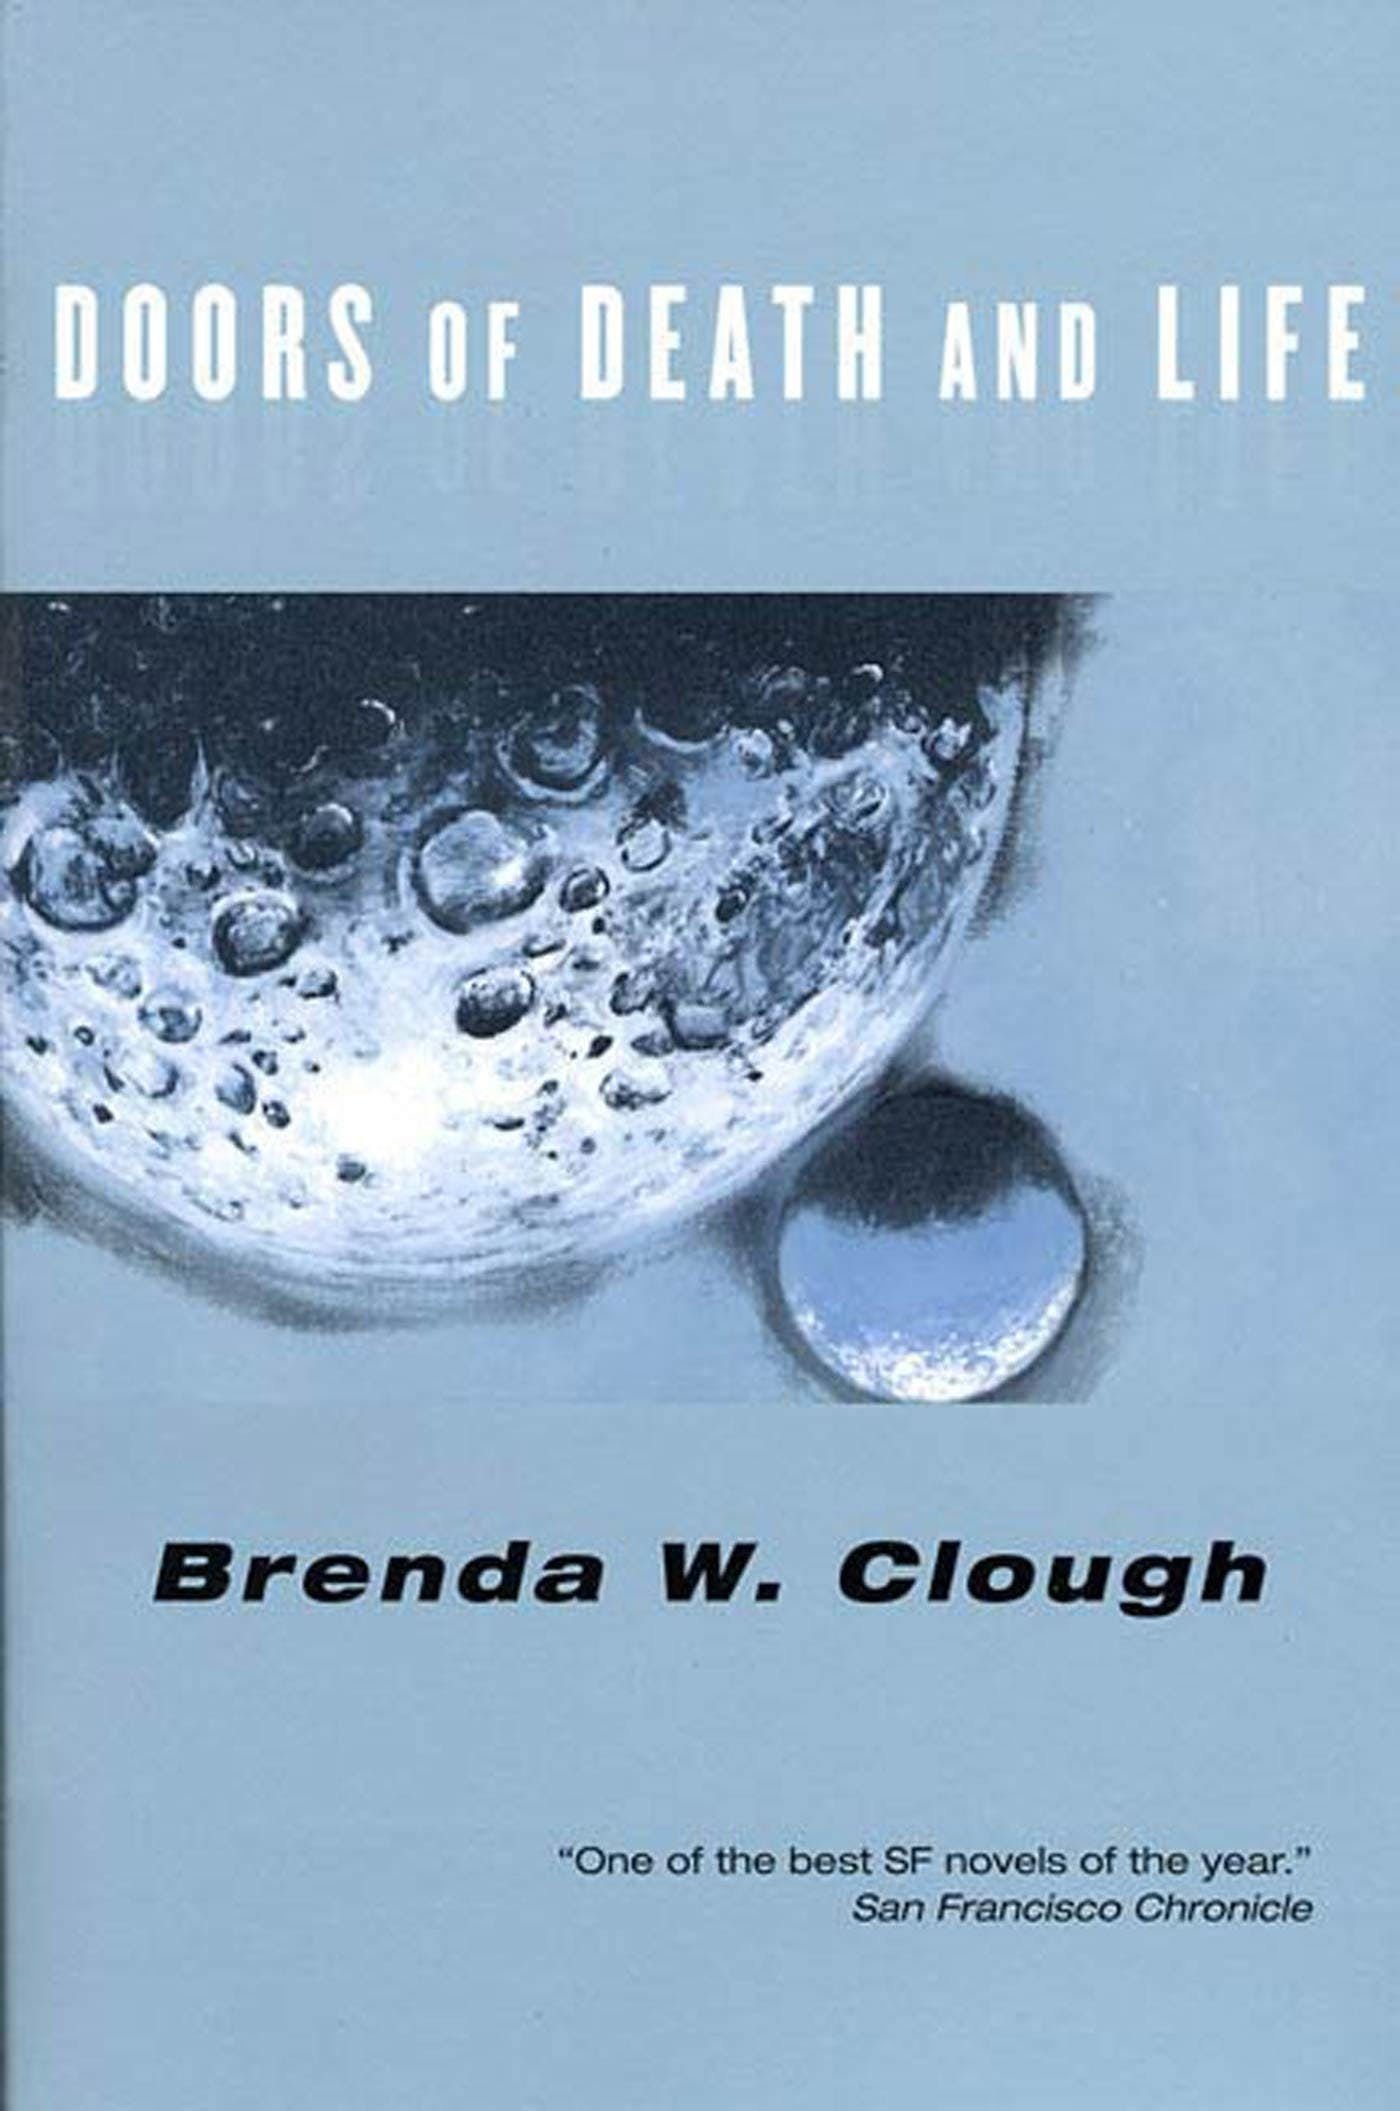 Image of The Doors of Death and Life